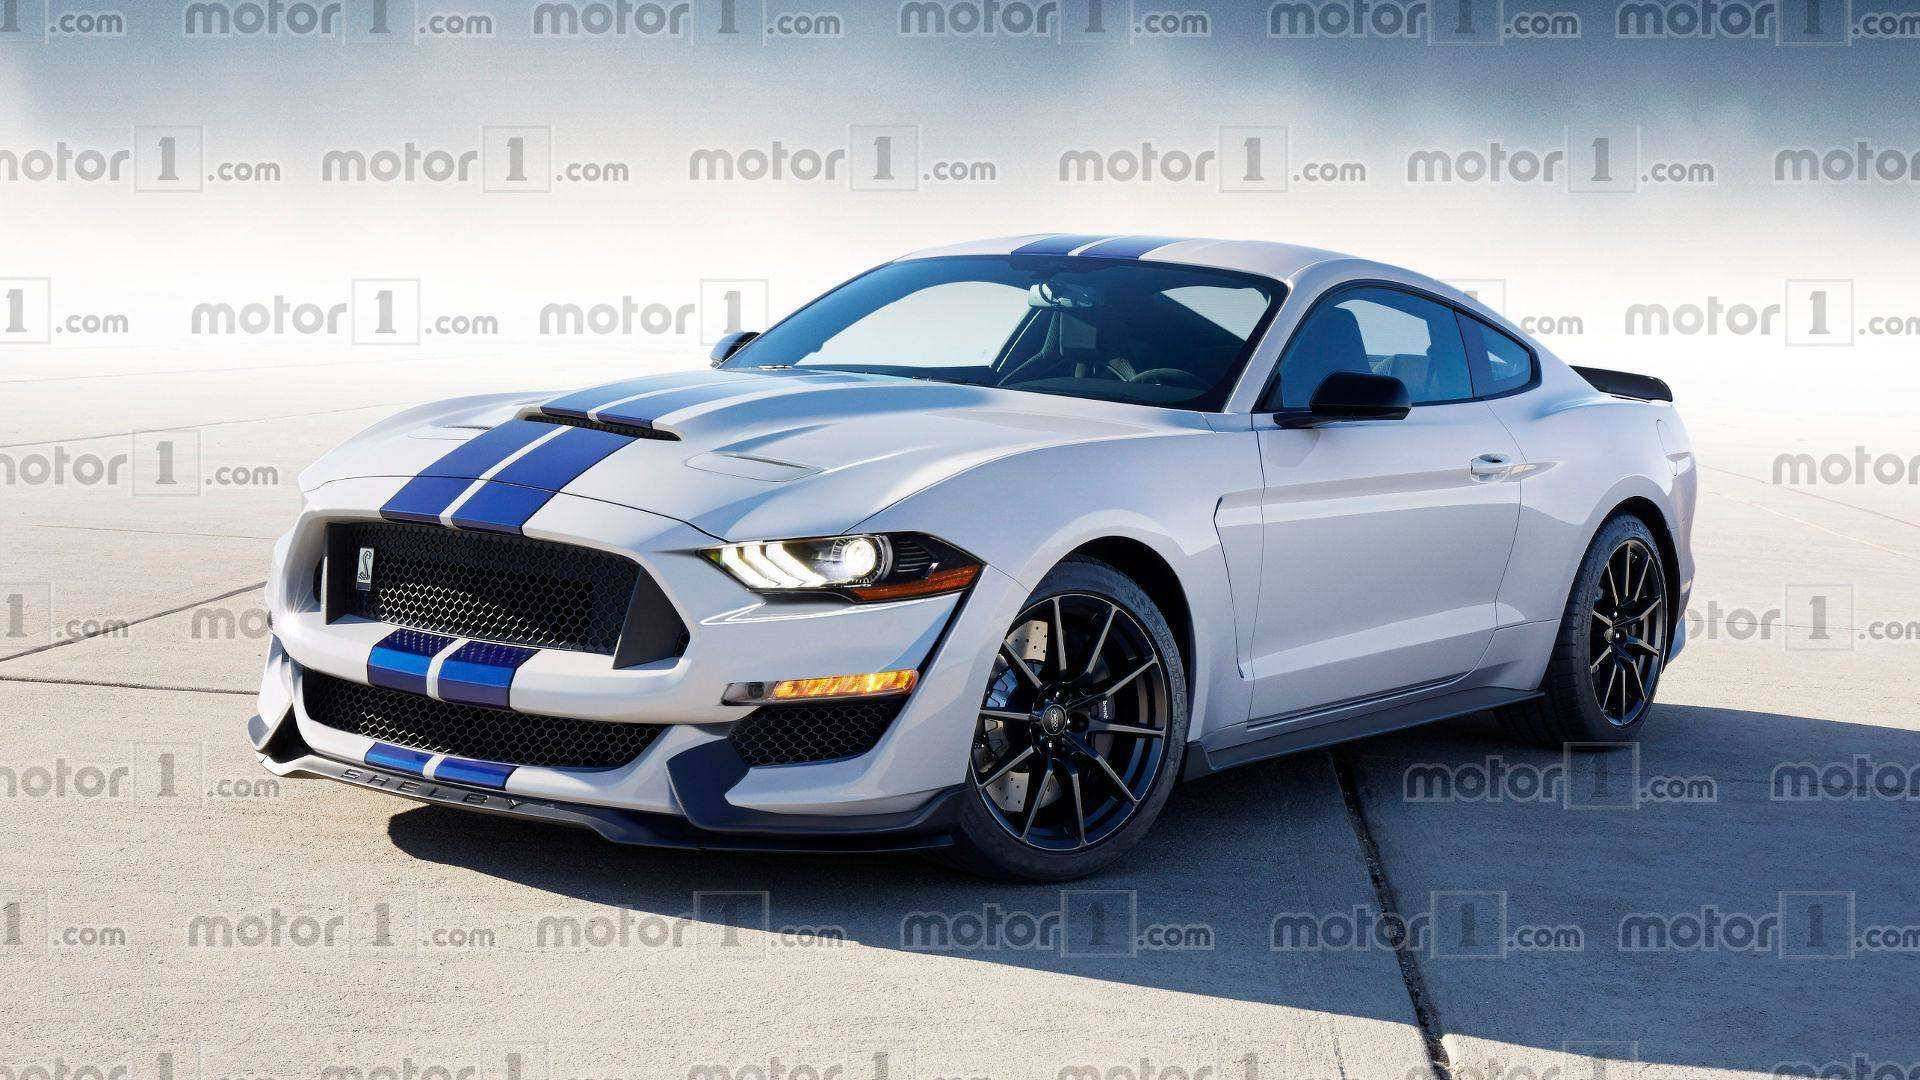 96 A 2019 Ford Gt 500 Engine